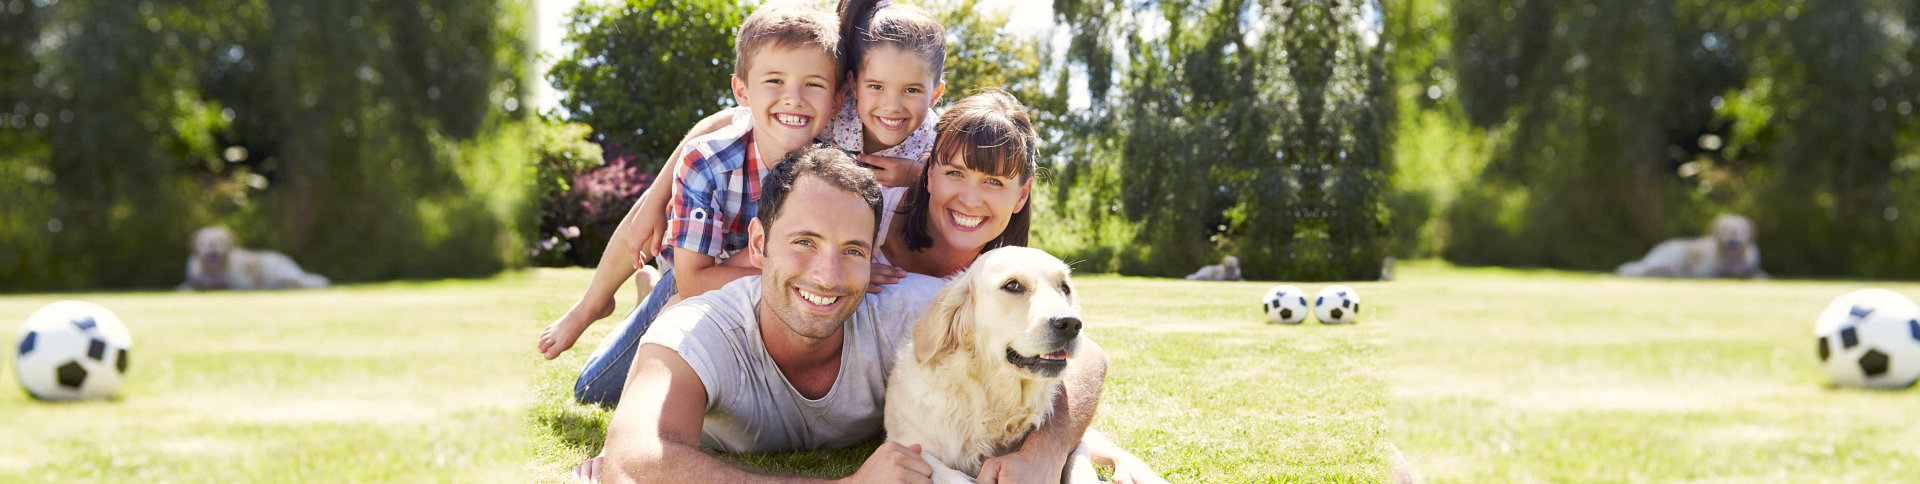 family relaxing in garden with pet